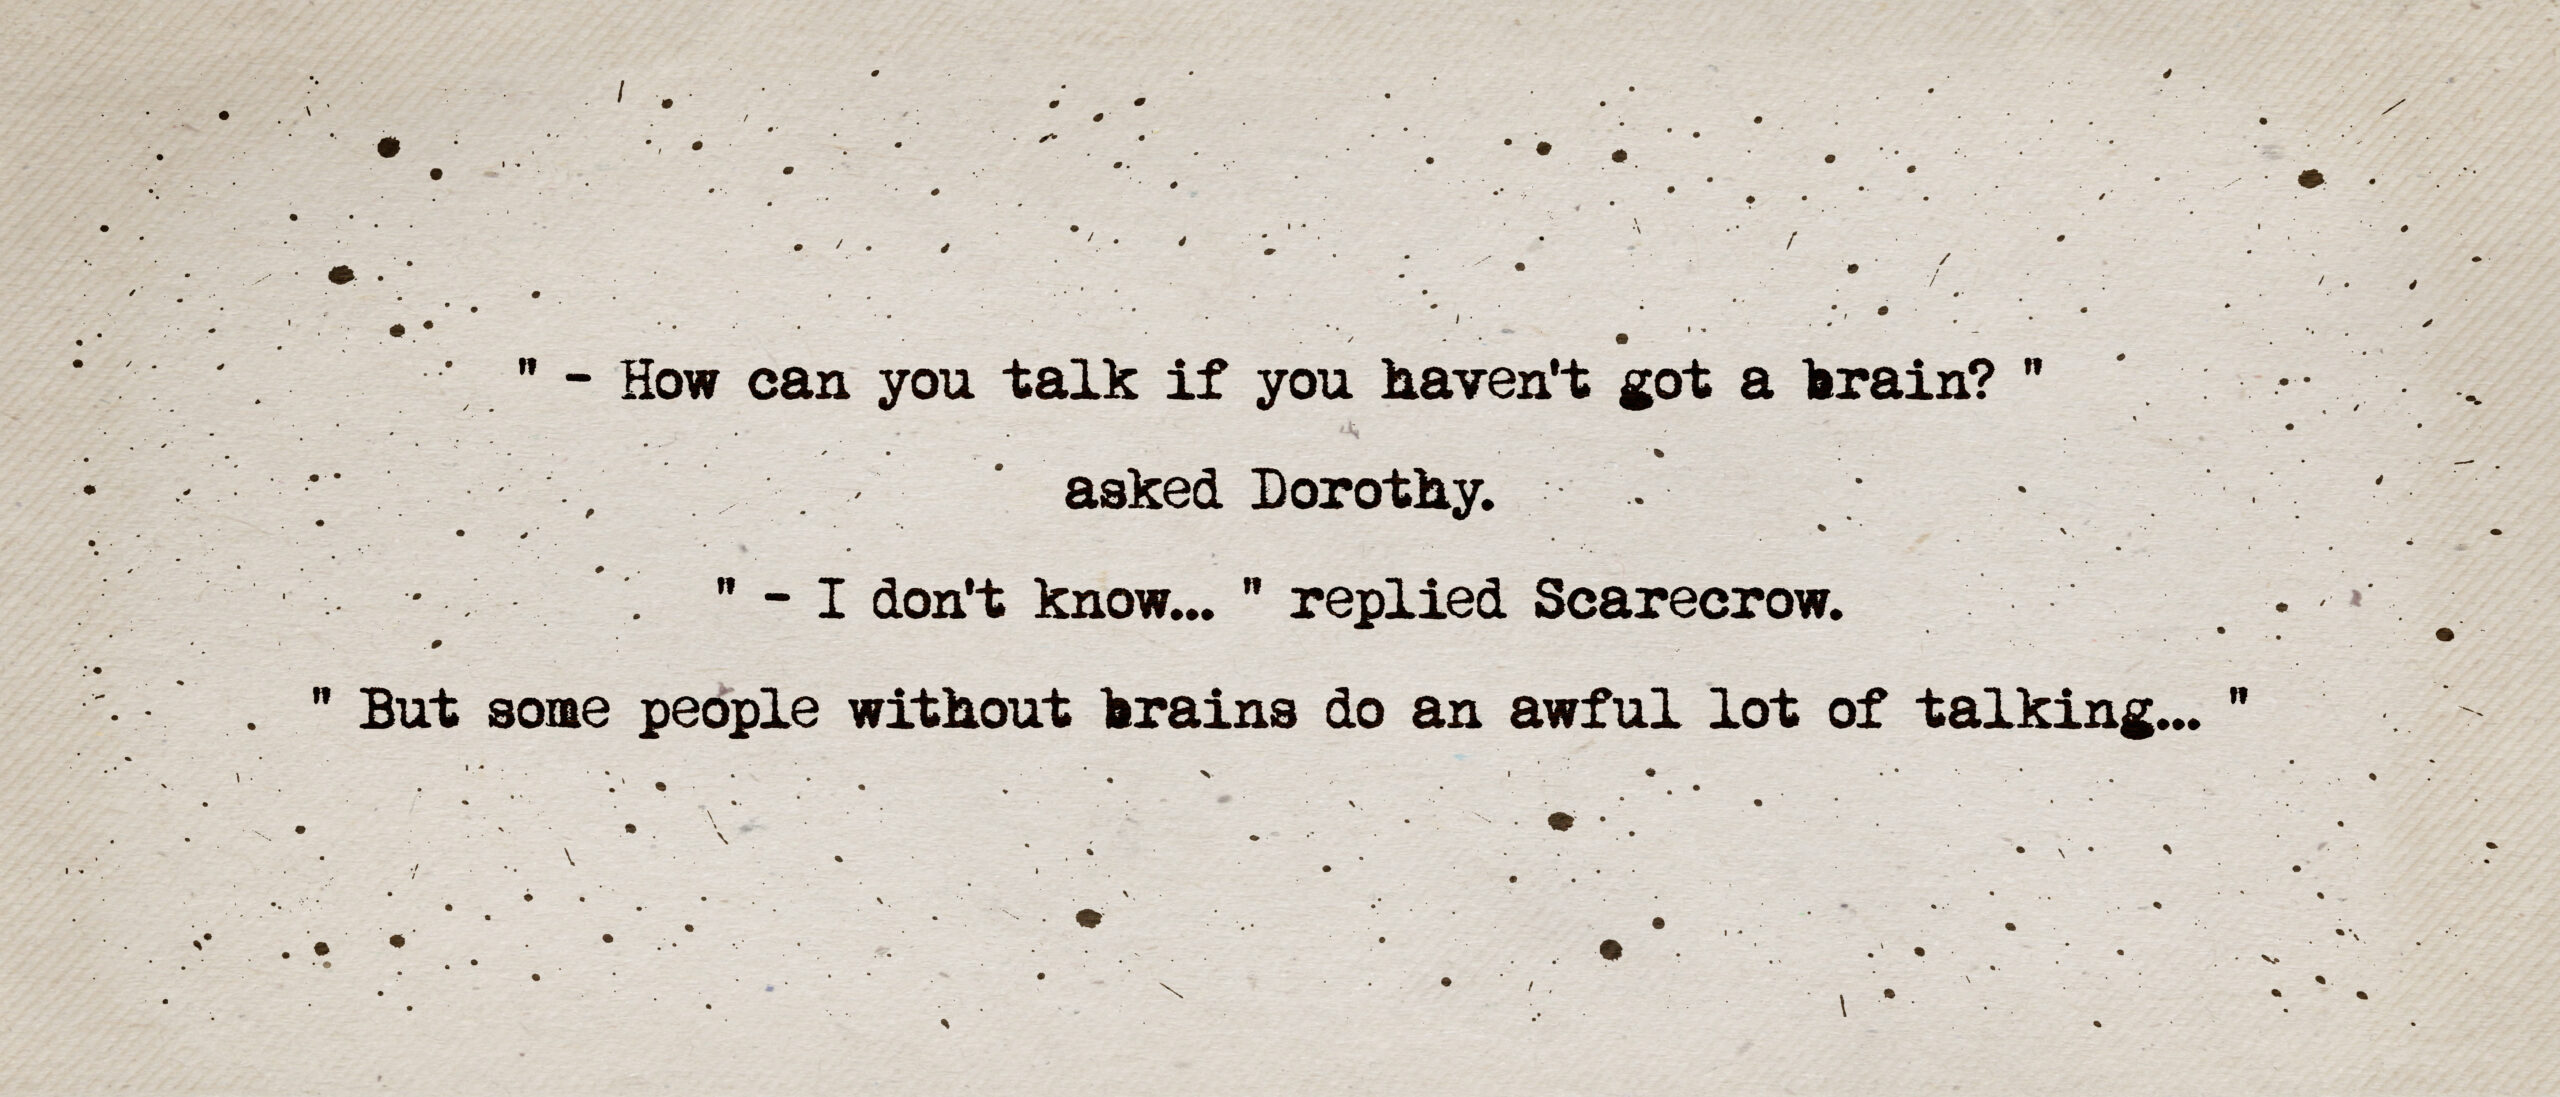 How can you talk if you haven't got a brain? asked Dorothy. I don't know, replied Scarecrow, but some people without brains do an awful lot of talking. Quote from The Wizard of Oz by L. Frank Baum.